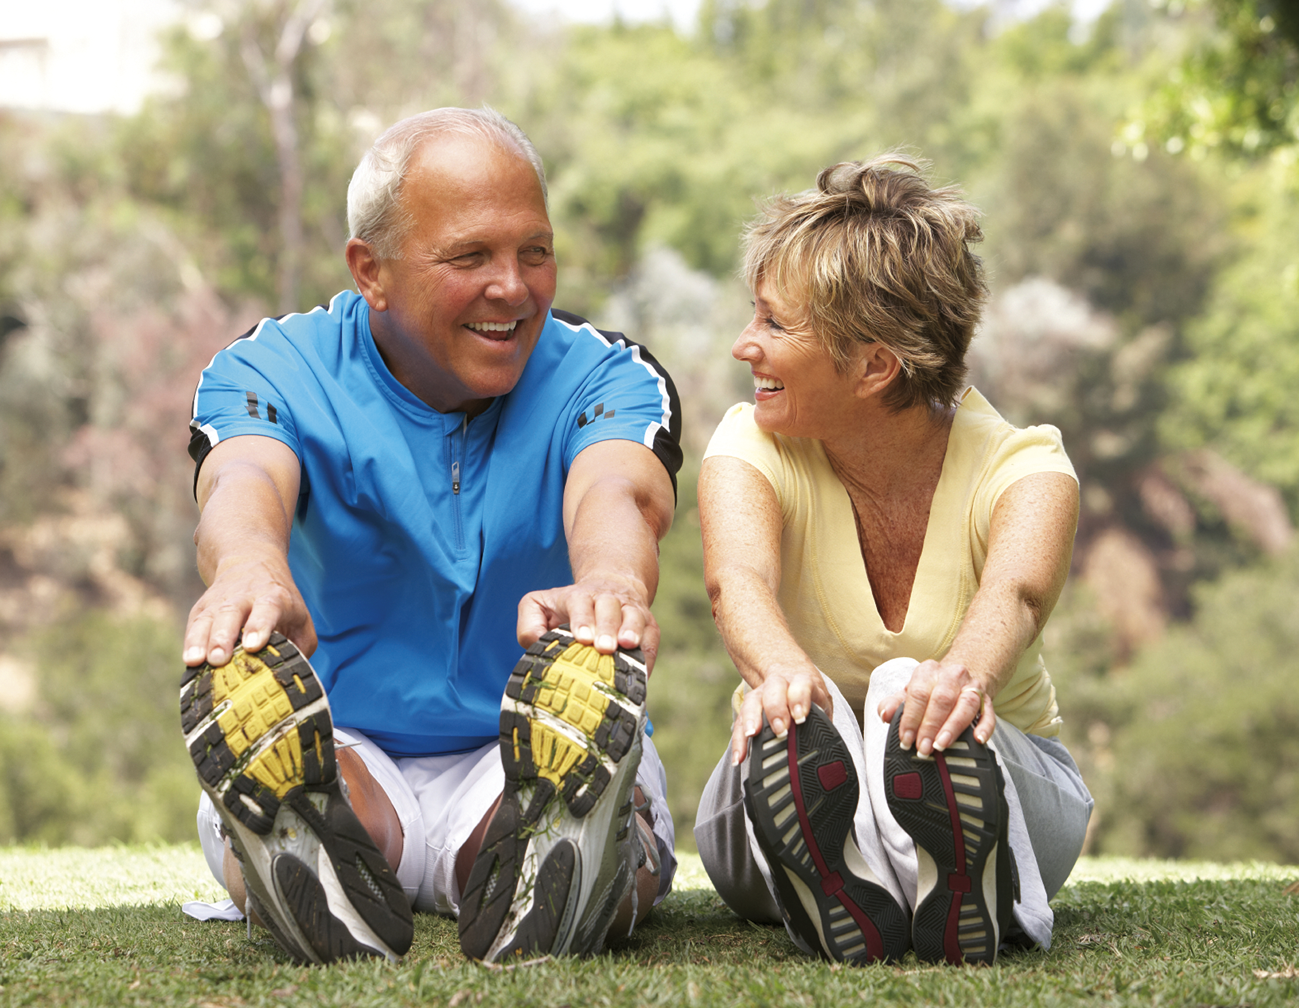 10 Best Sports For Seniors. header image